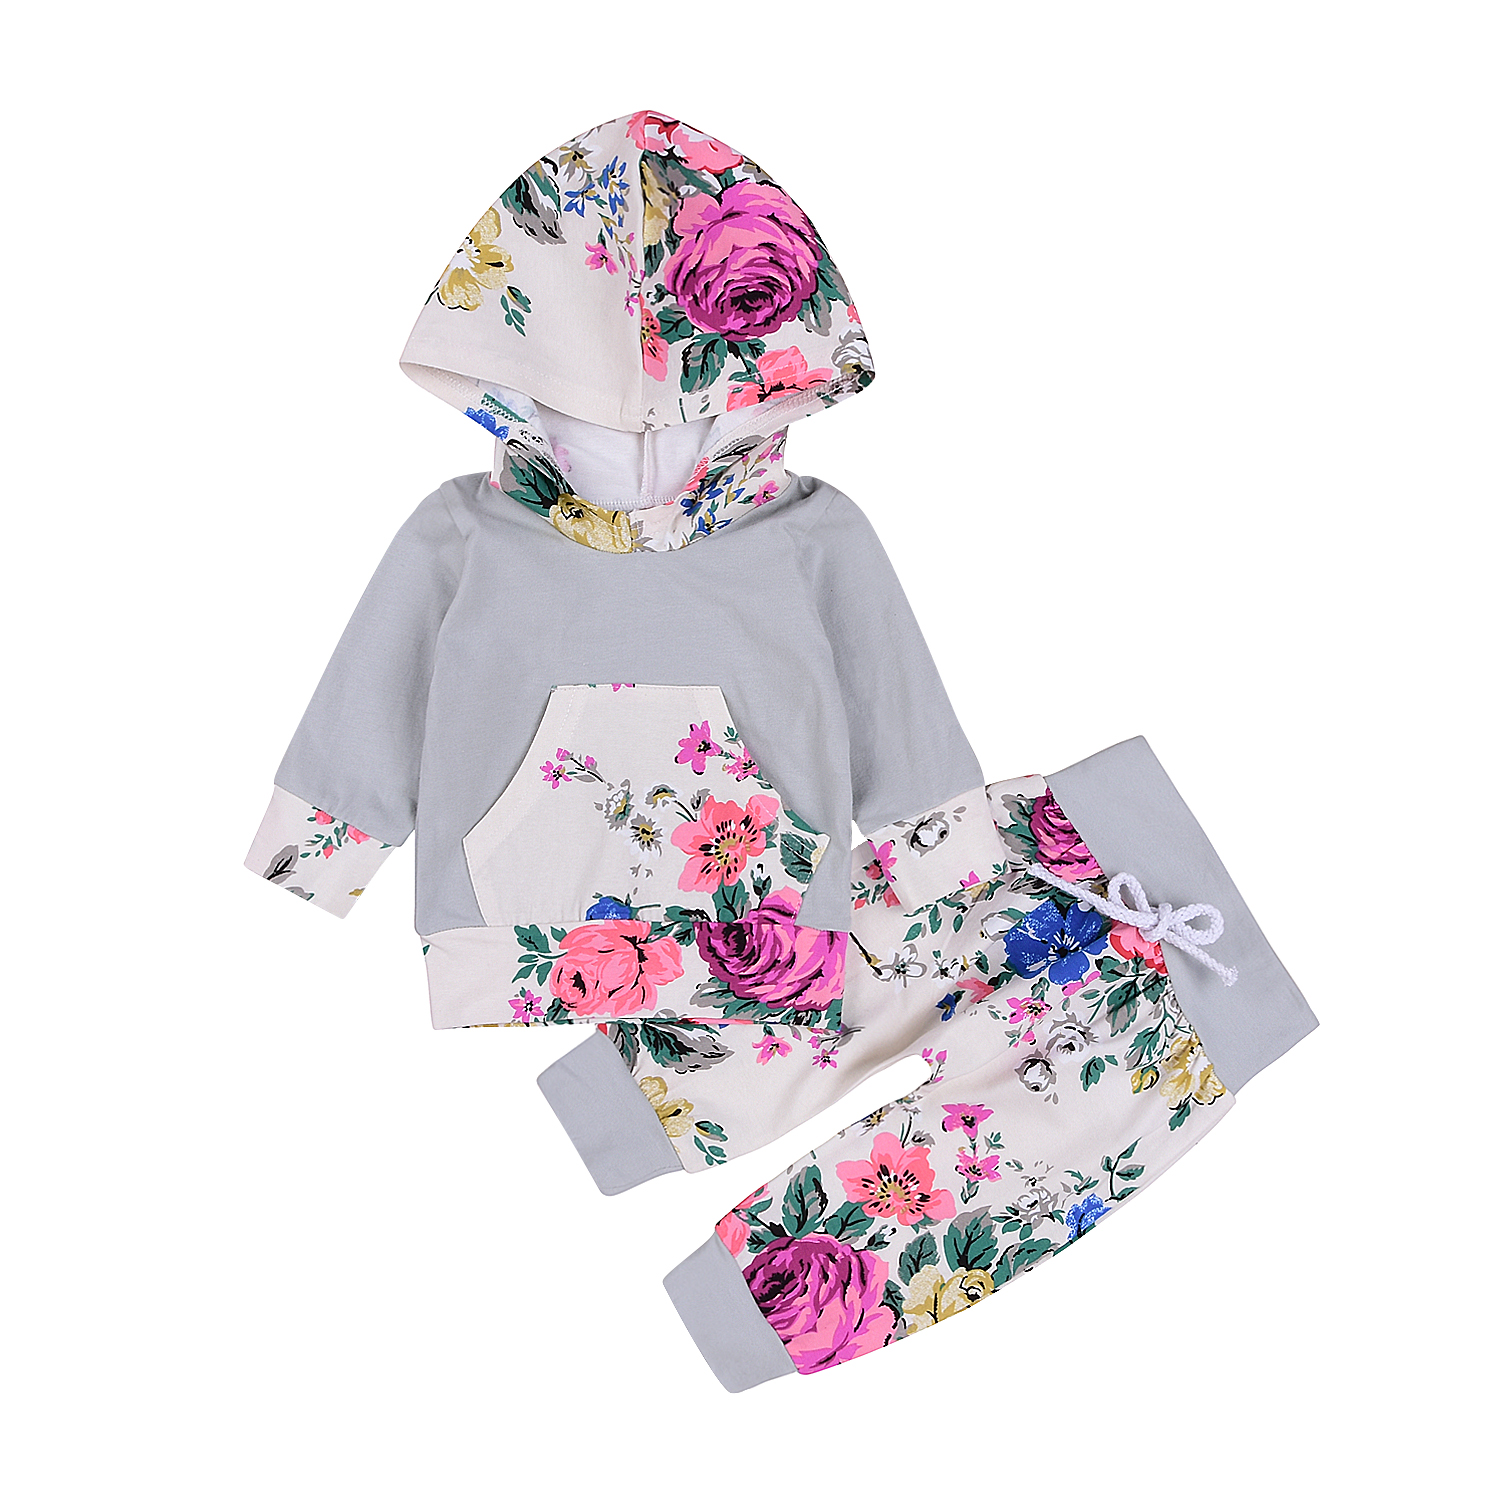 Newborn Toddler Baby Boy Girls Clothes Infant Cotton Cute Long Sleeve Floral Hooded Tops Pants 2Pcs Outfits Set Clothes